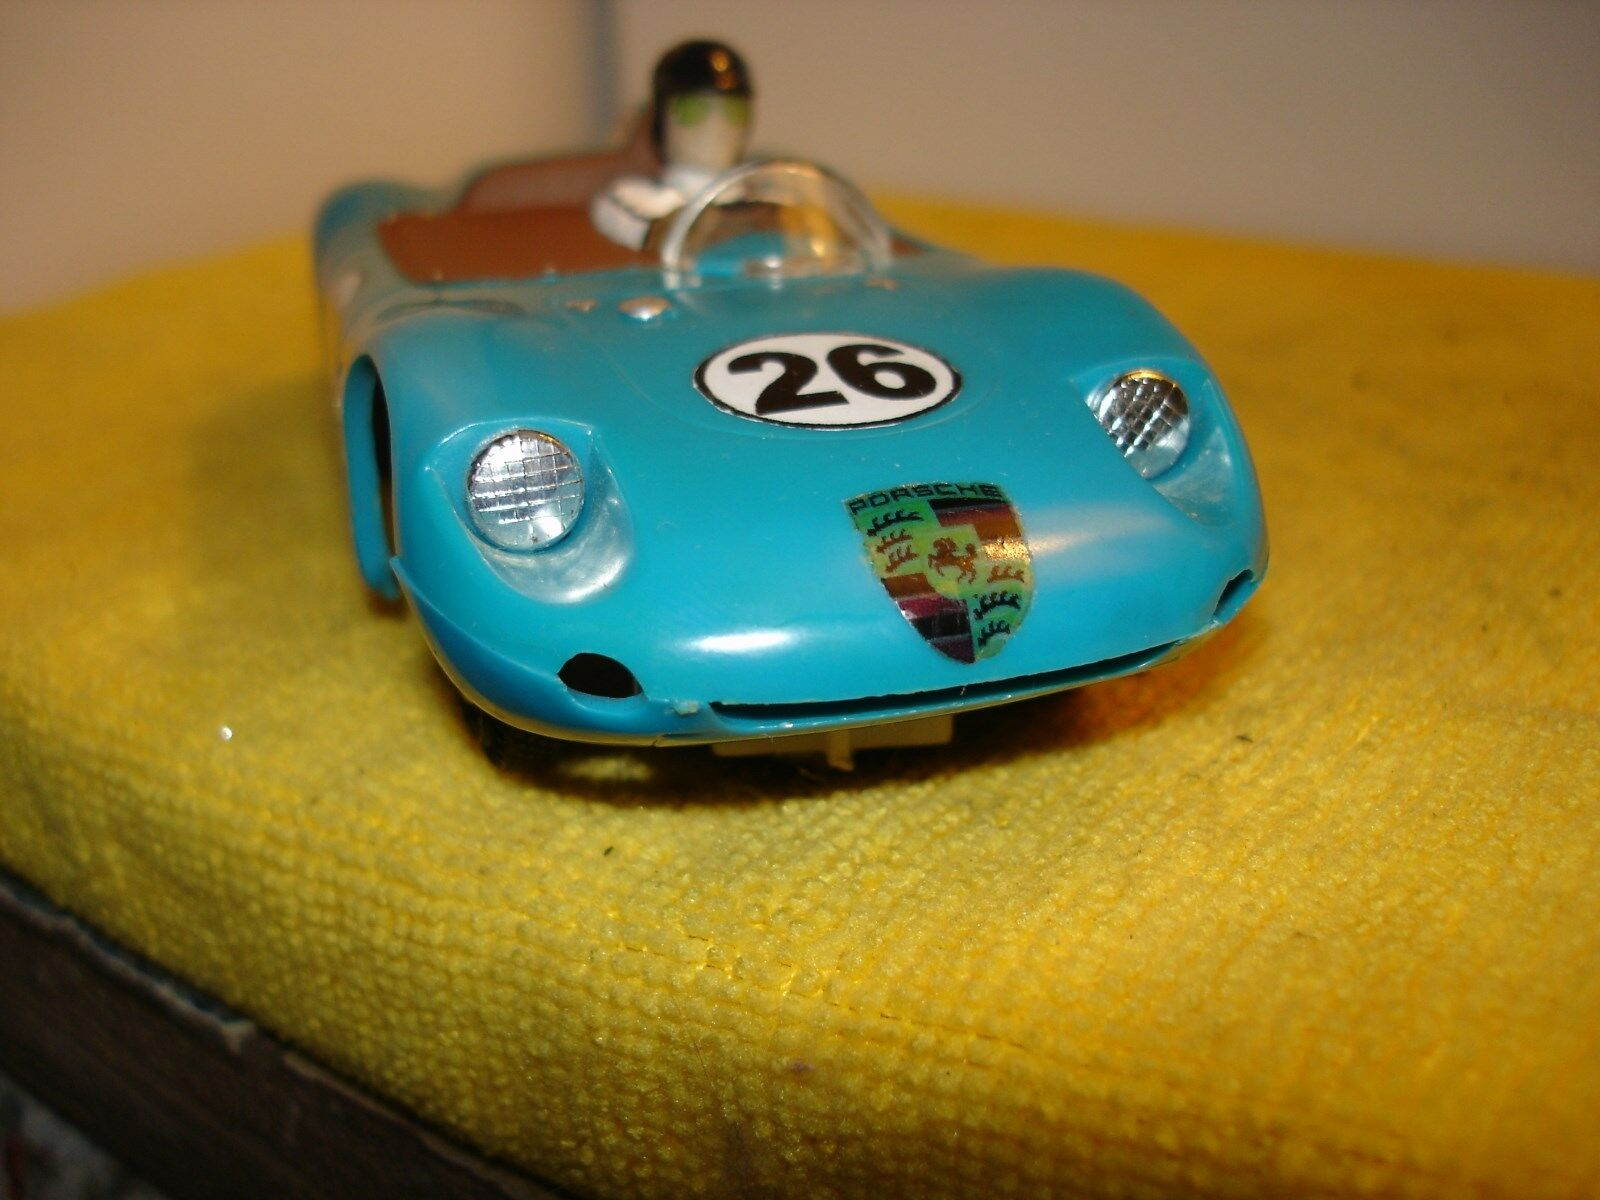 Eldon Porsche RS-61 1093-13 Spyder slot car 1 32 offered by MTH